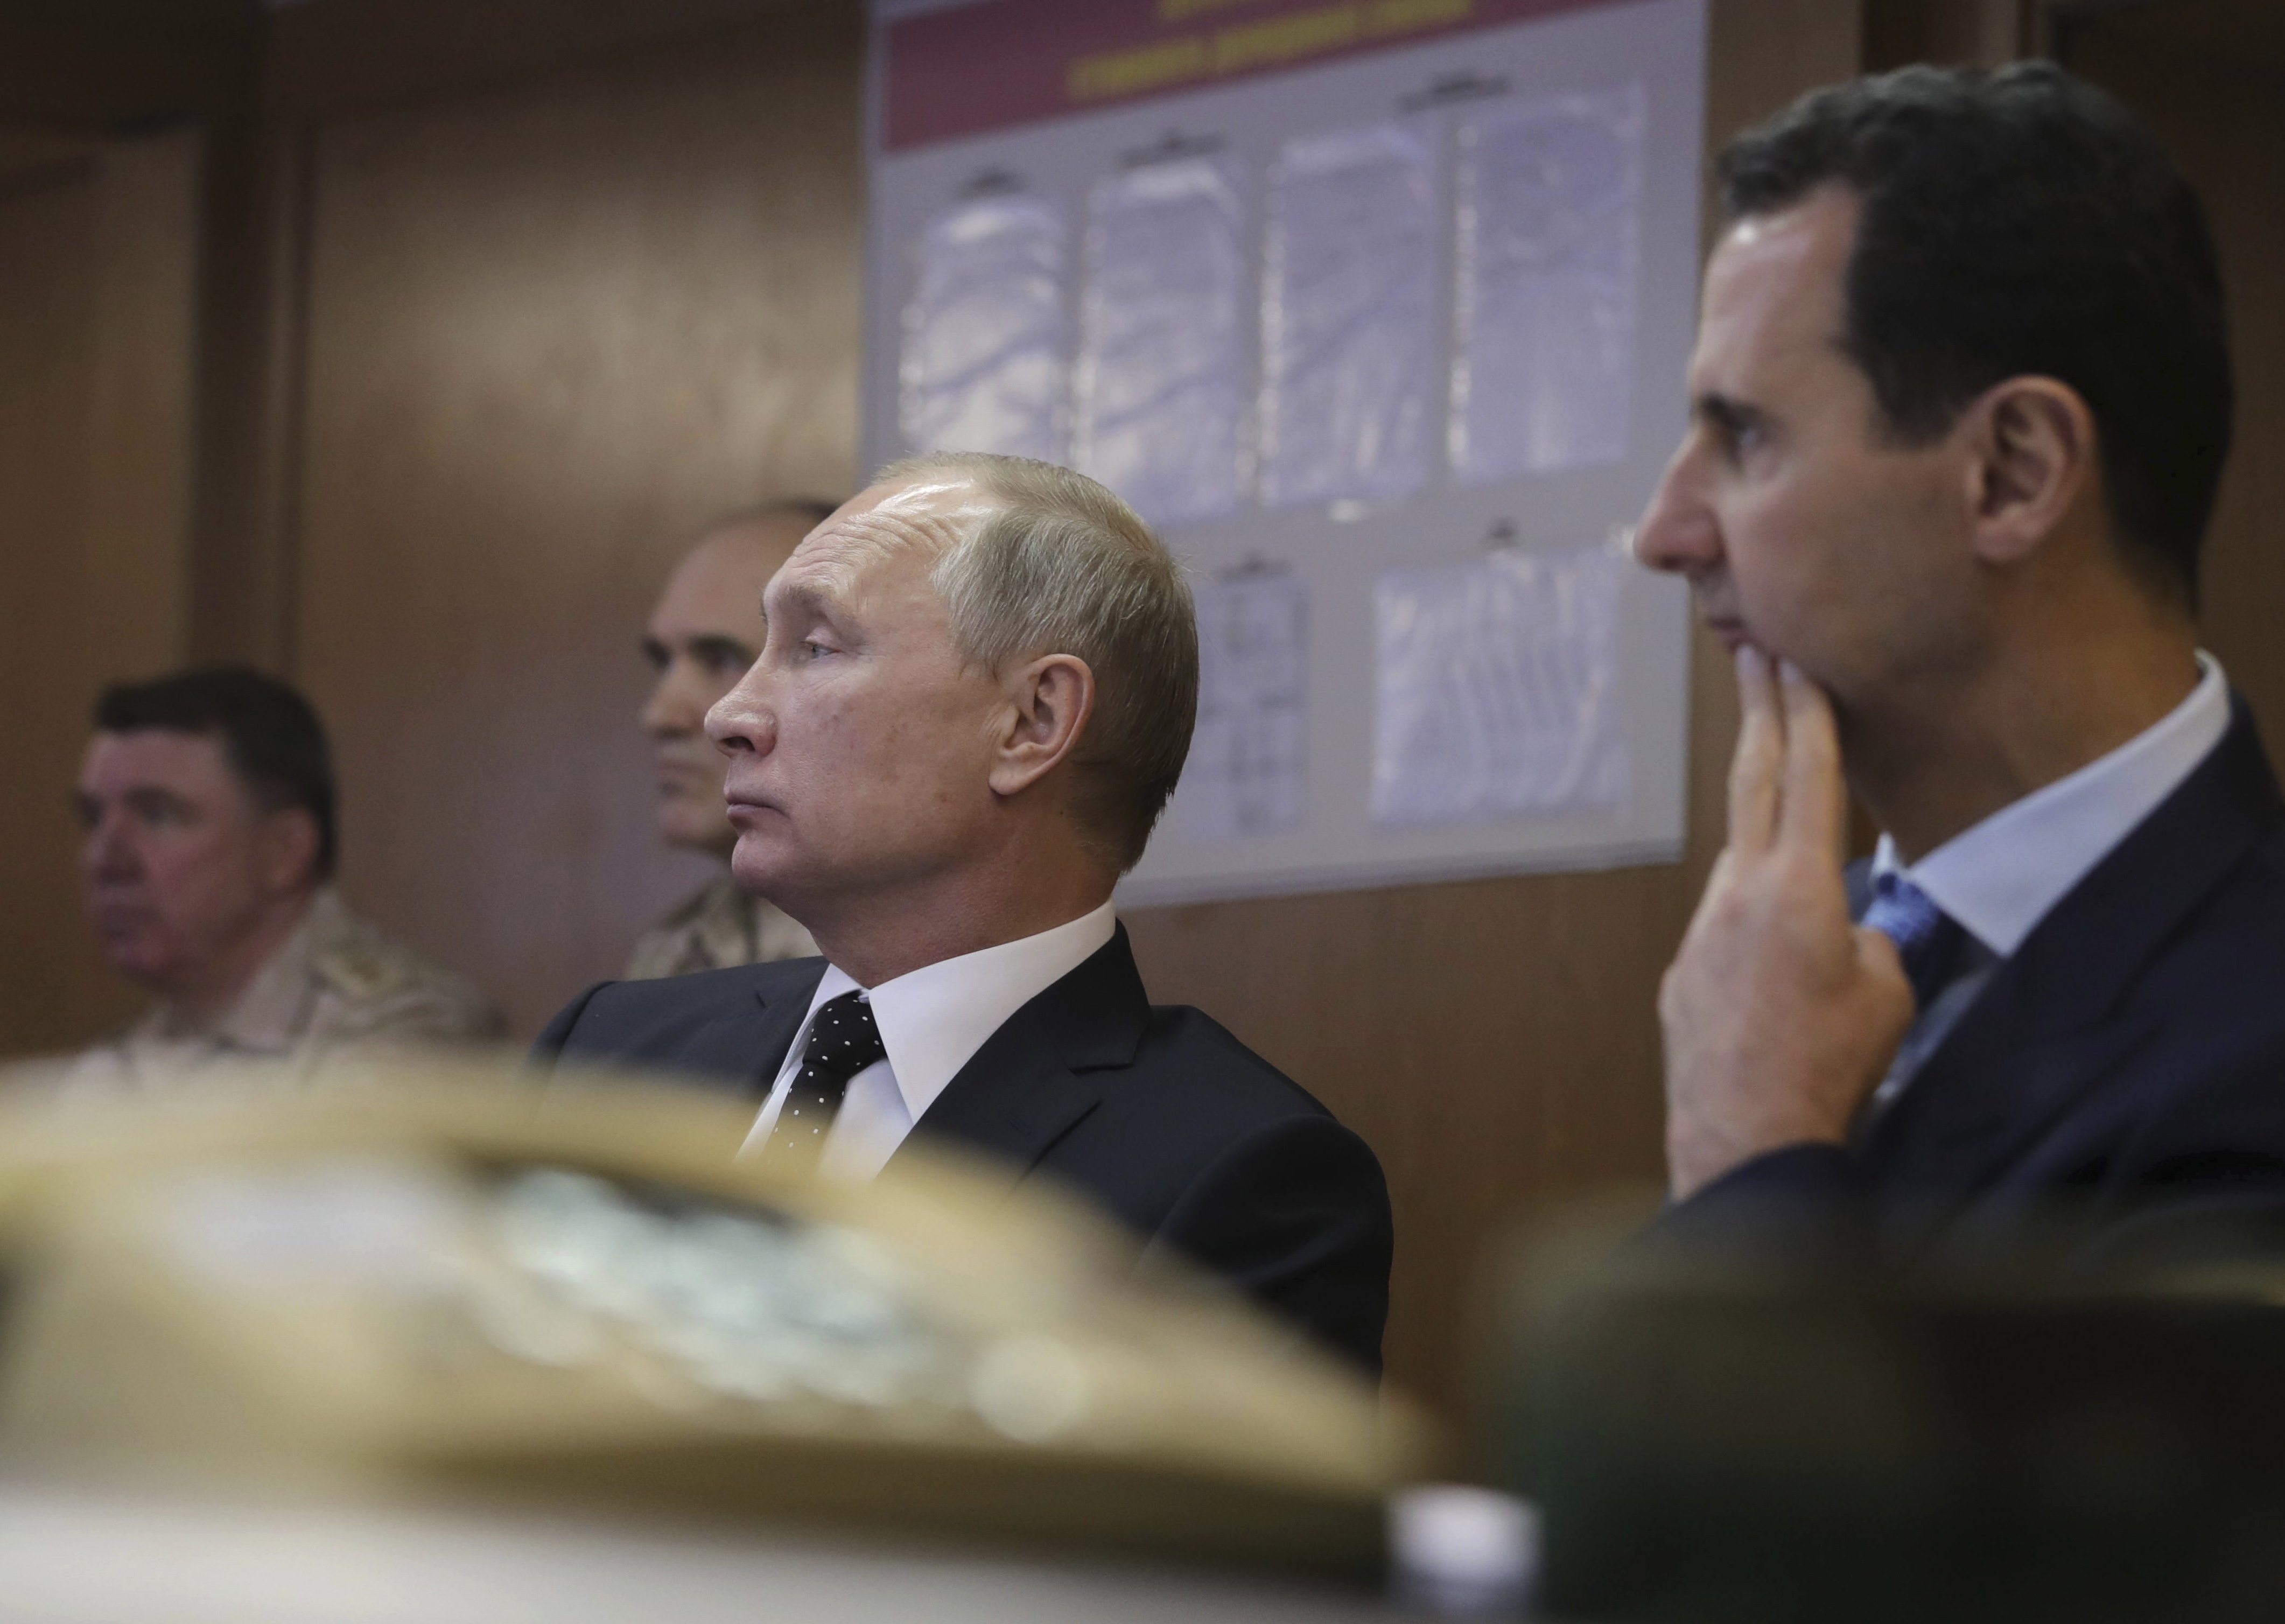 Russian President Vladimir Putin (2nd R) and Syrian President Bashar al-Assad (R) visit the Hmeymim air base in Latakia Province, Syria December 11, 2017.